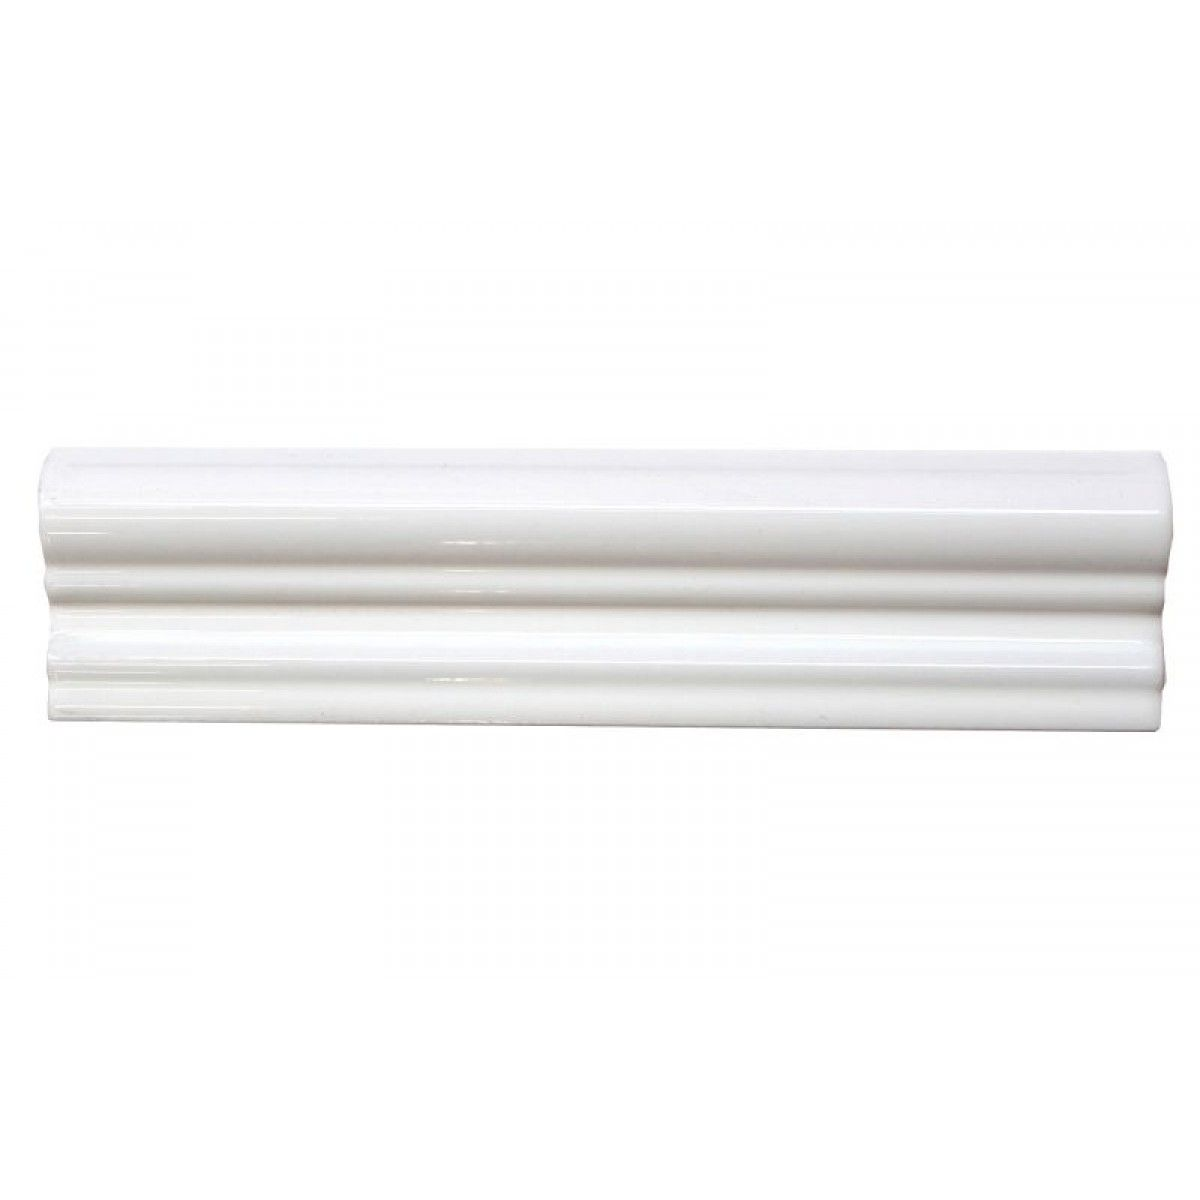 White dado 50mm x 200mm flats pinterest bathroom tiling bathroom tiling dailygadgetfo Images